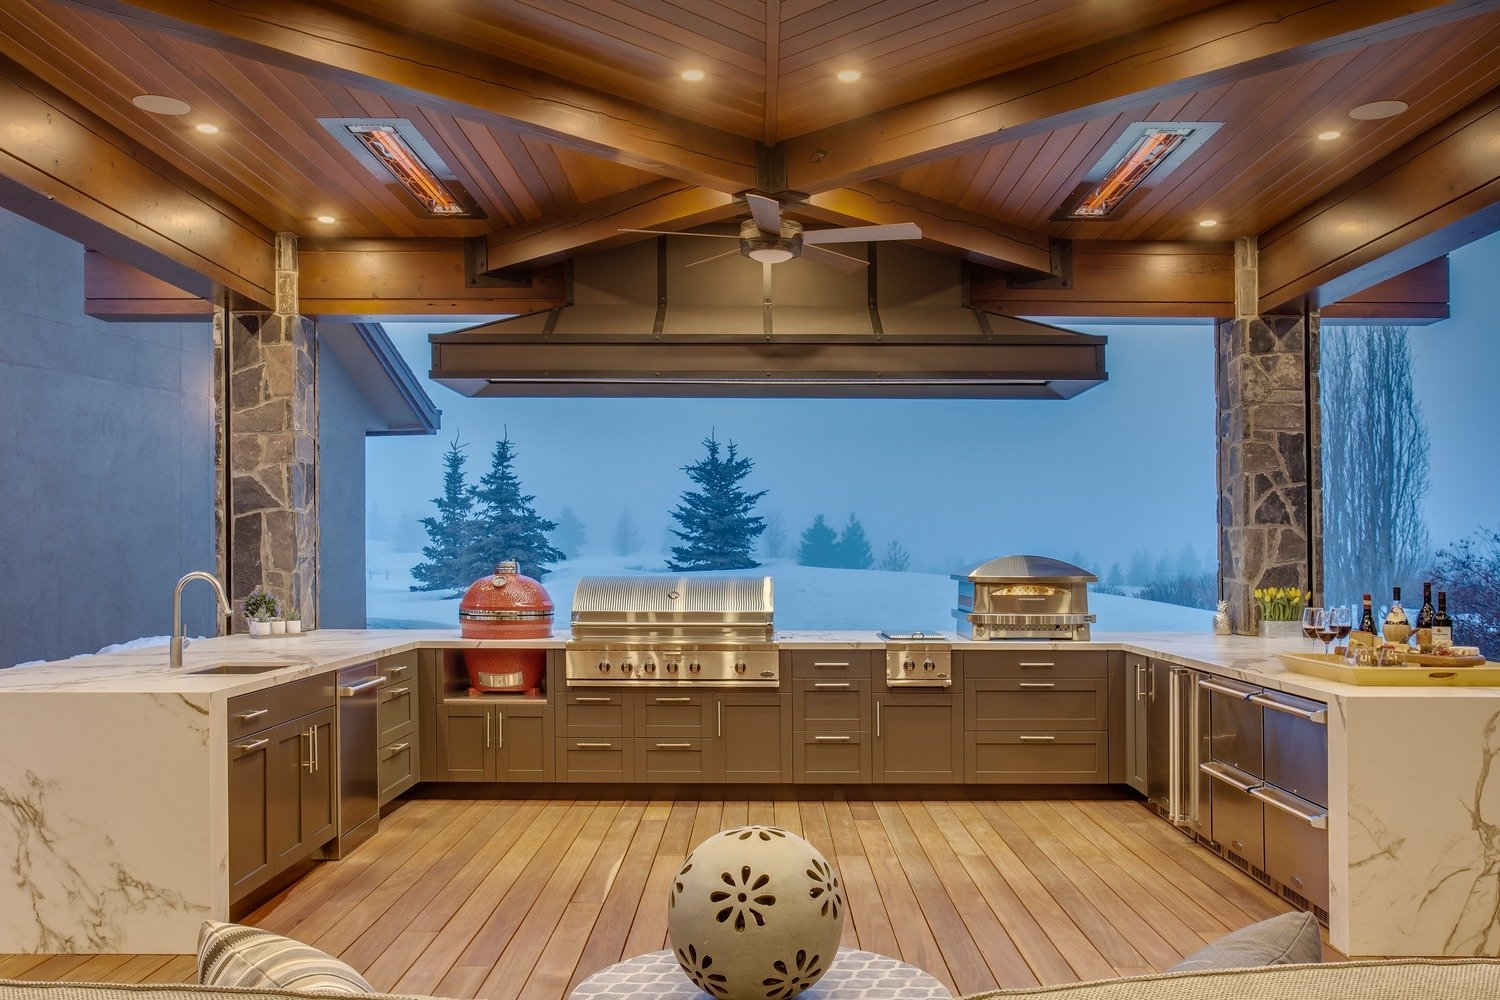 Outdoor Living, Outdoor Kitchen, Pizza Oven, BBQ